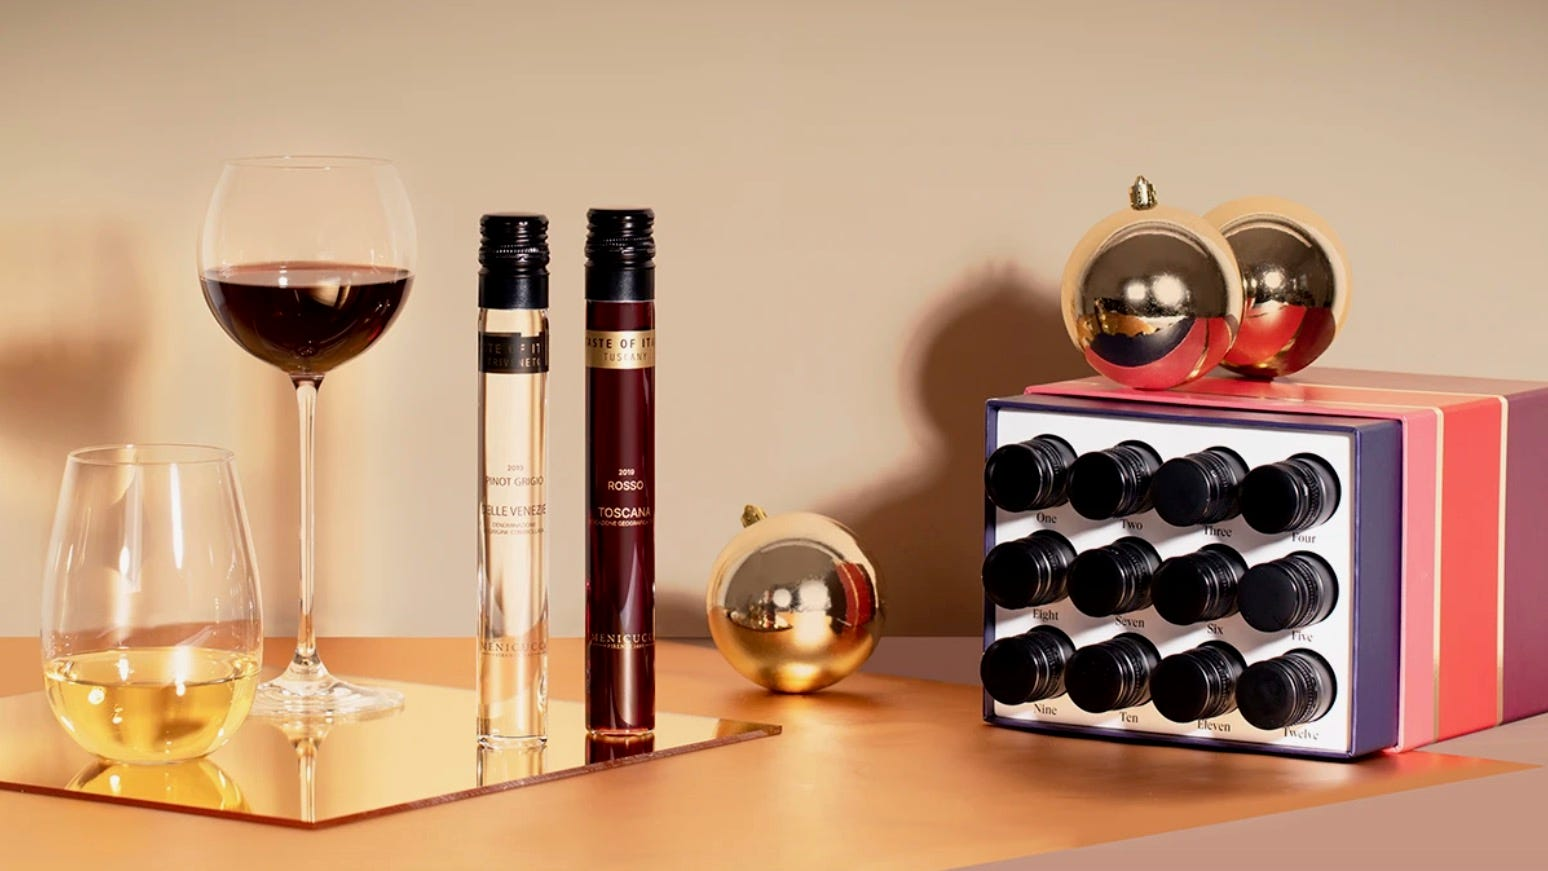 Two glasses and two vials of wine sit next to a wine advent calendar.